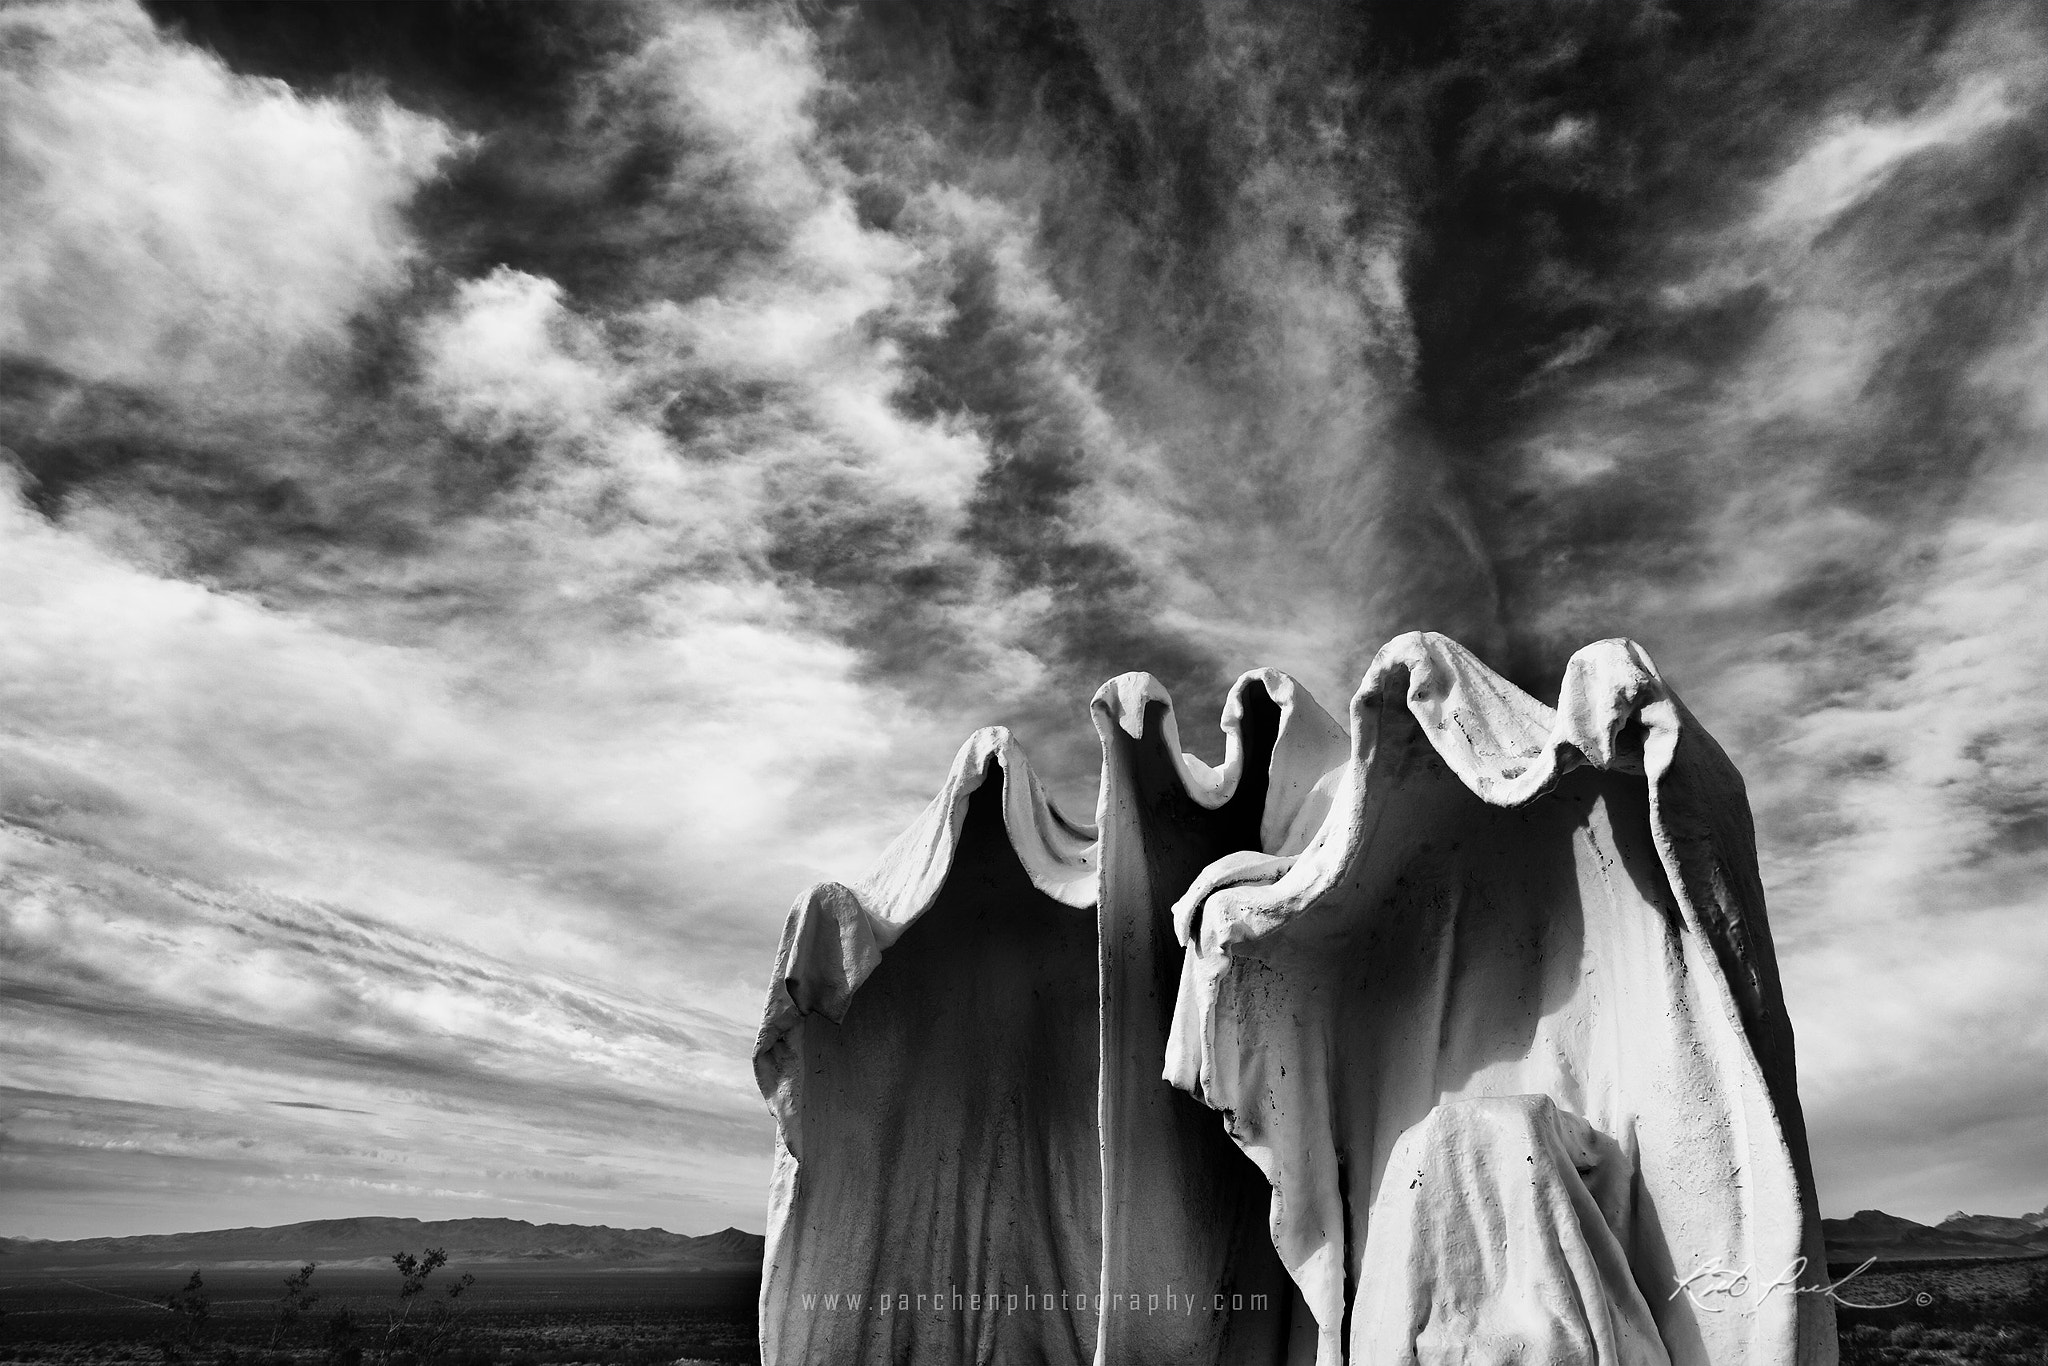 Photograph Ghostly Desert by Rick Parchen on 500px